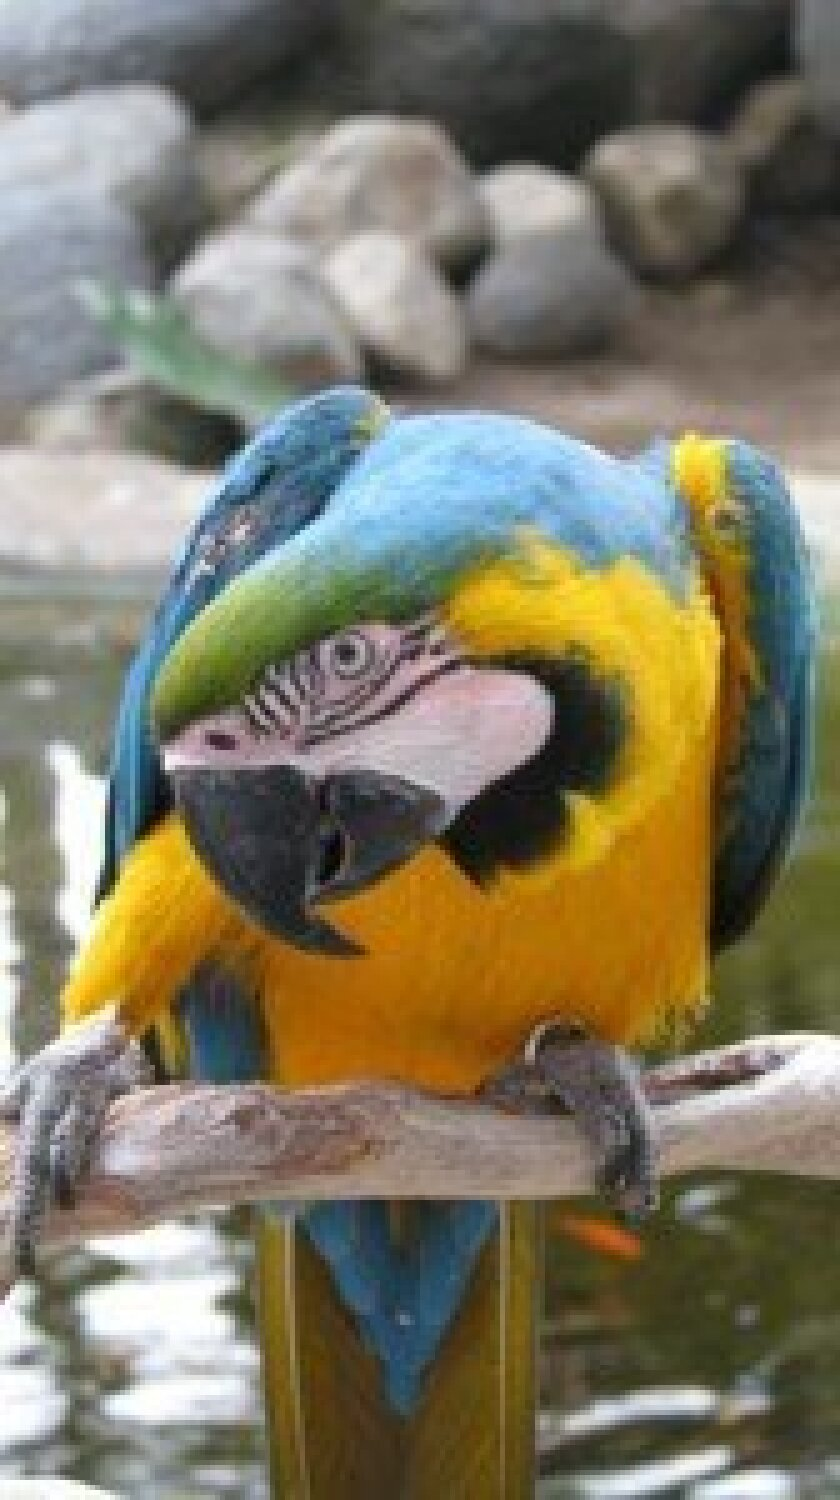 Free Flight, a nonprofit in Del Mar that shelters tropical birds, is holding a fundraiser on Oct. 11.